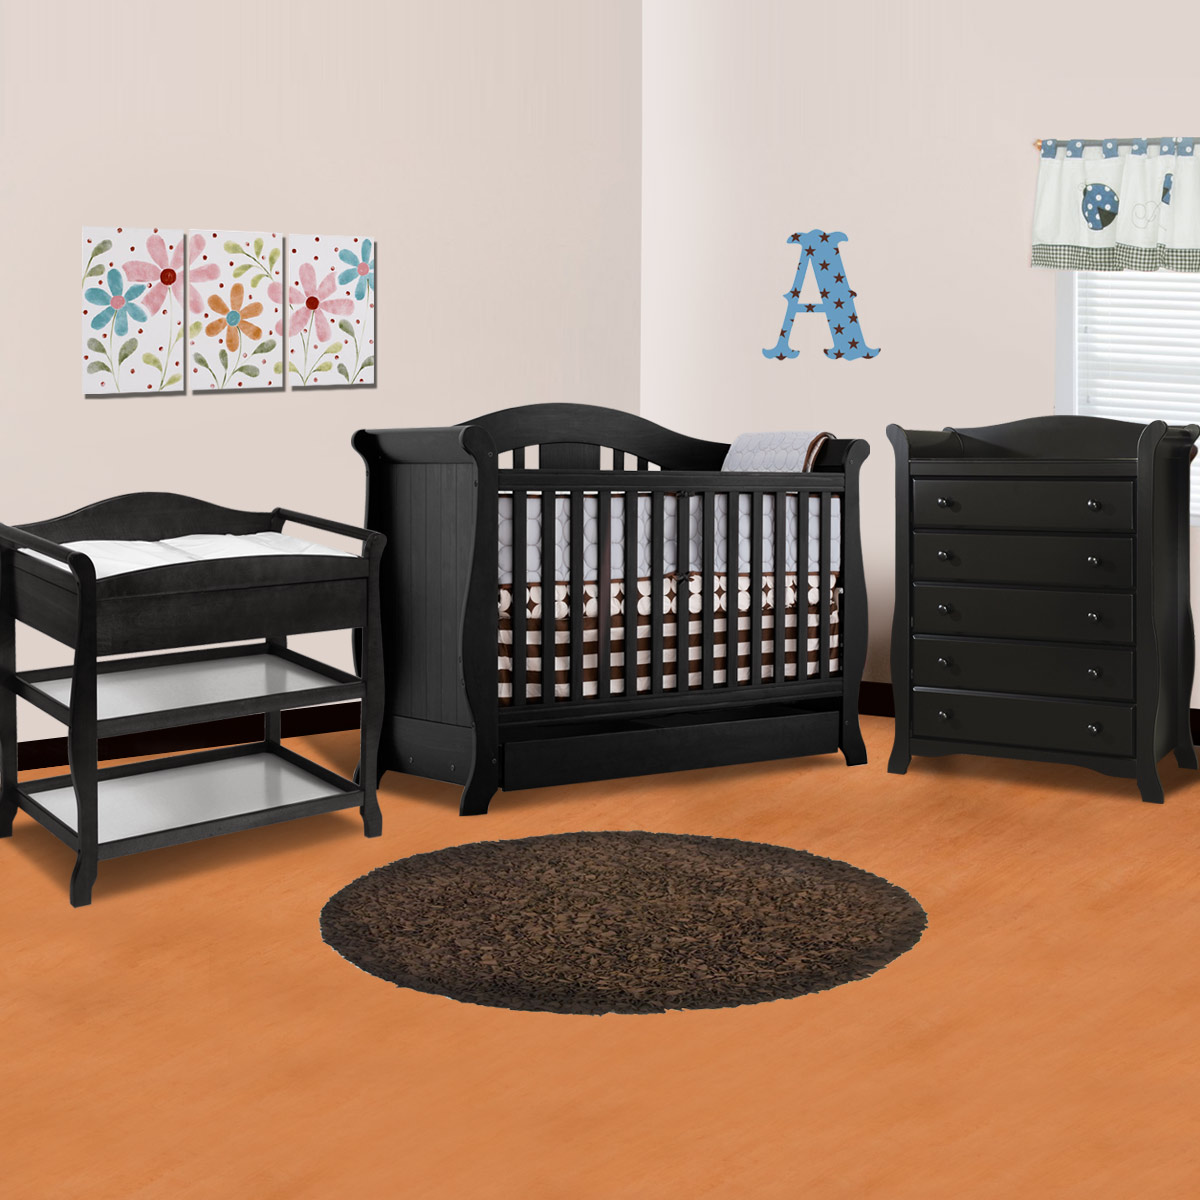 Storkcraft 3 Piece Nursery Set   Vittoria Convertible Crib, Aspen Changing  Table And Avalon 5 Drawer Dresser In Black FREE SHIPPING